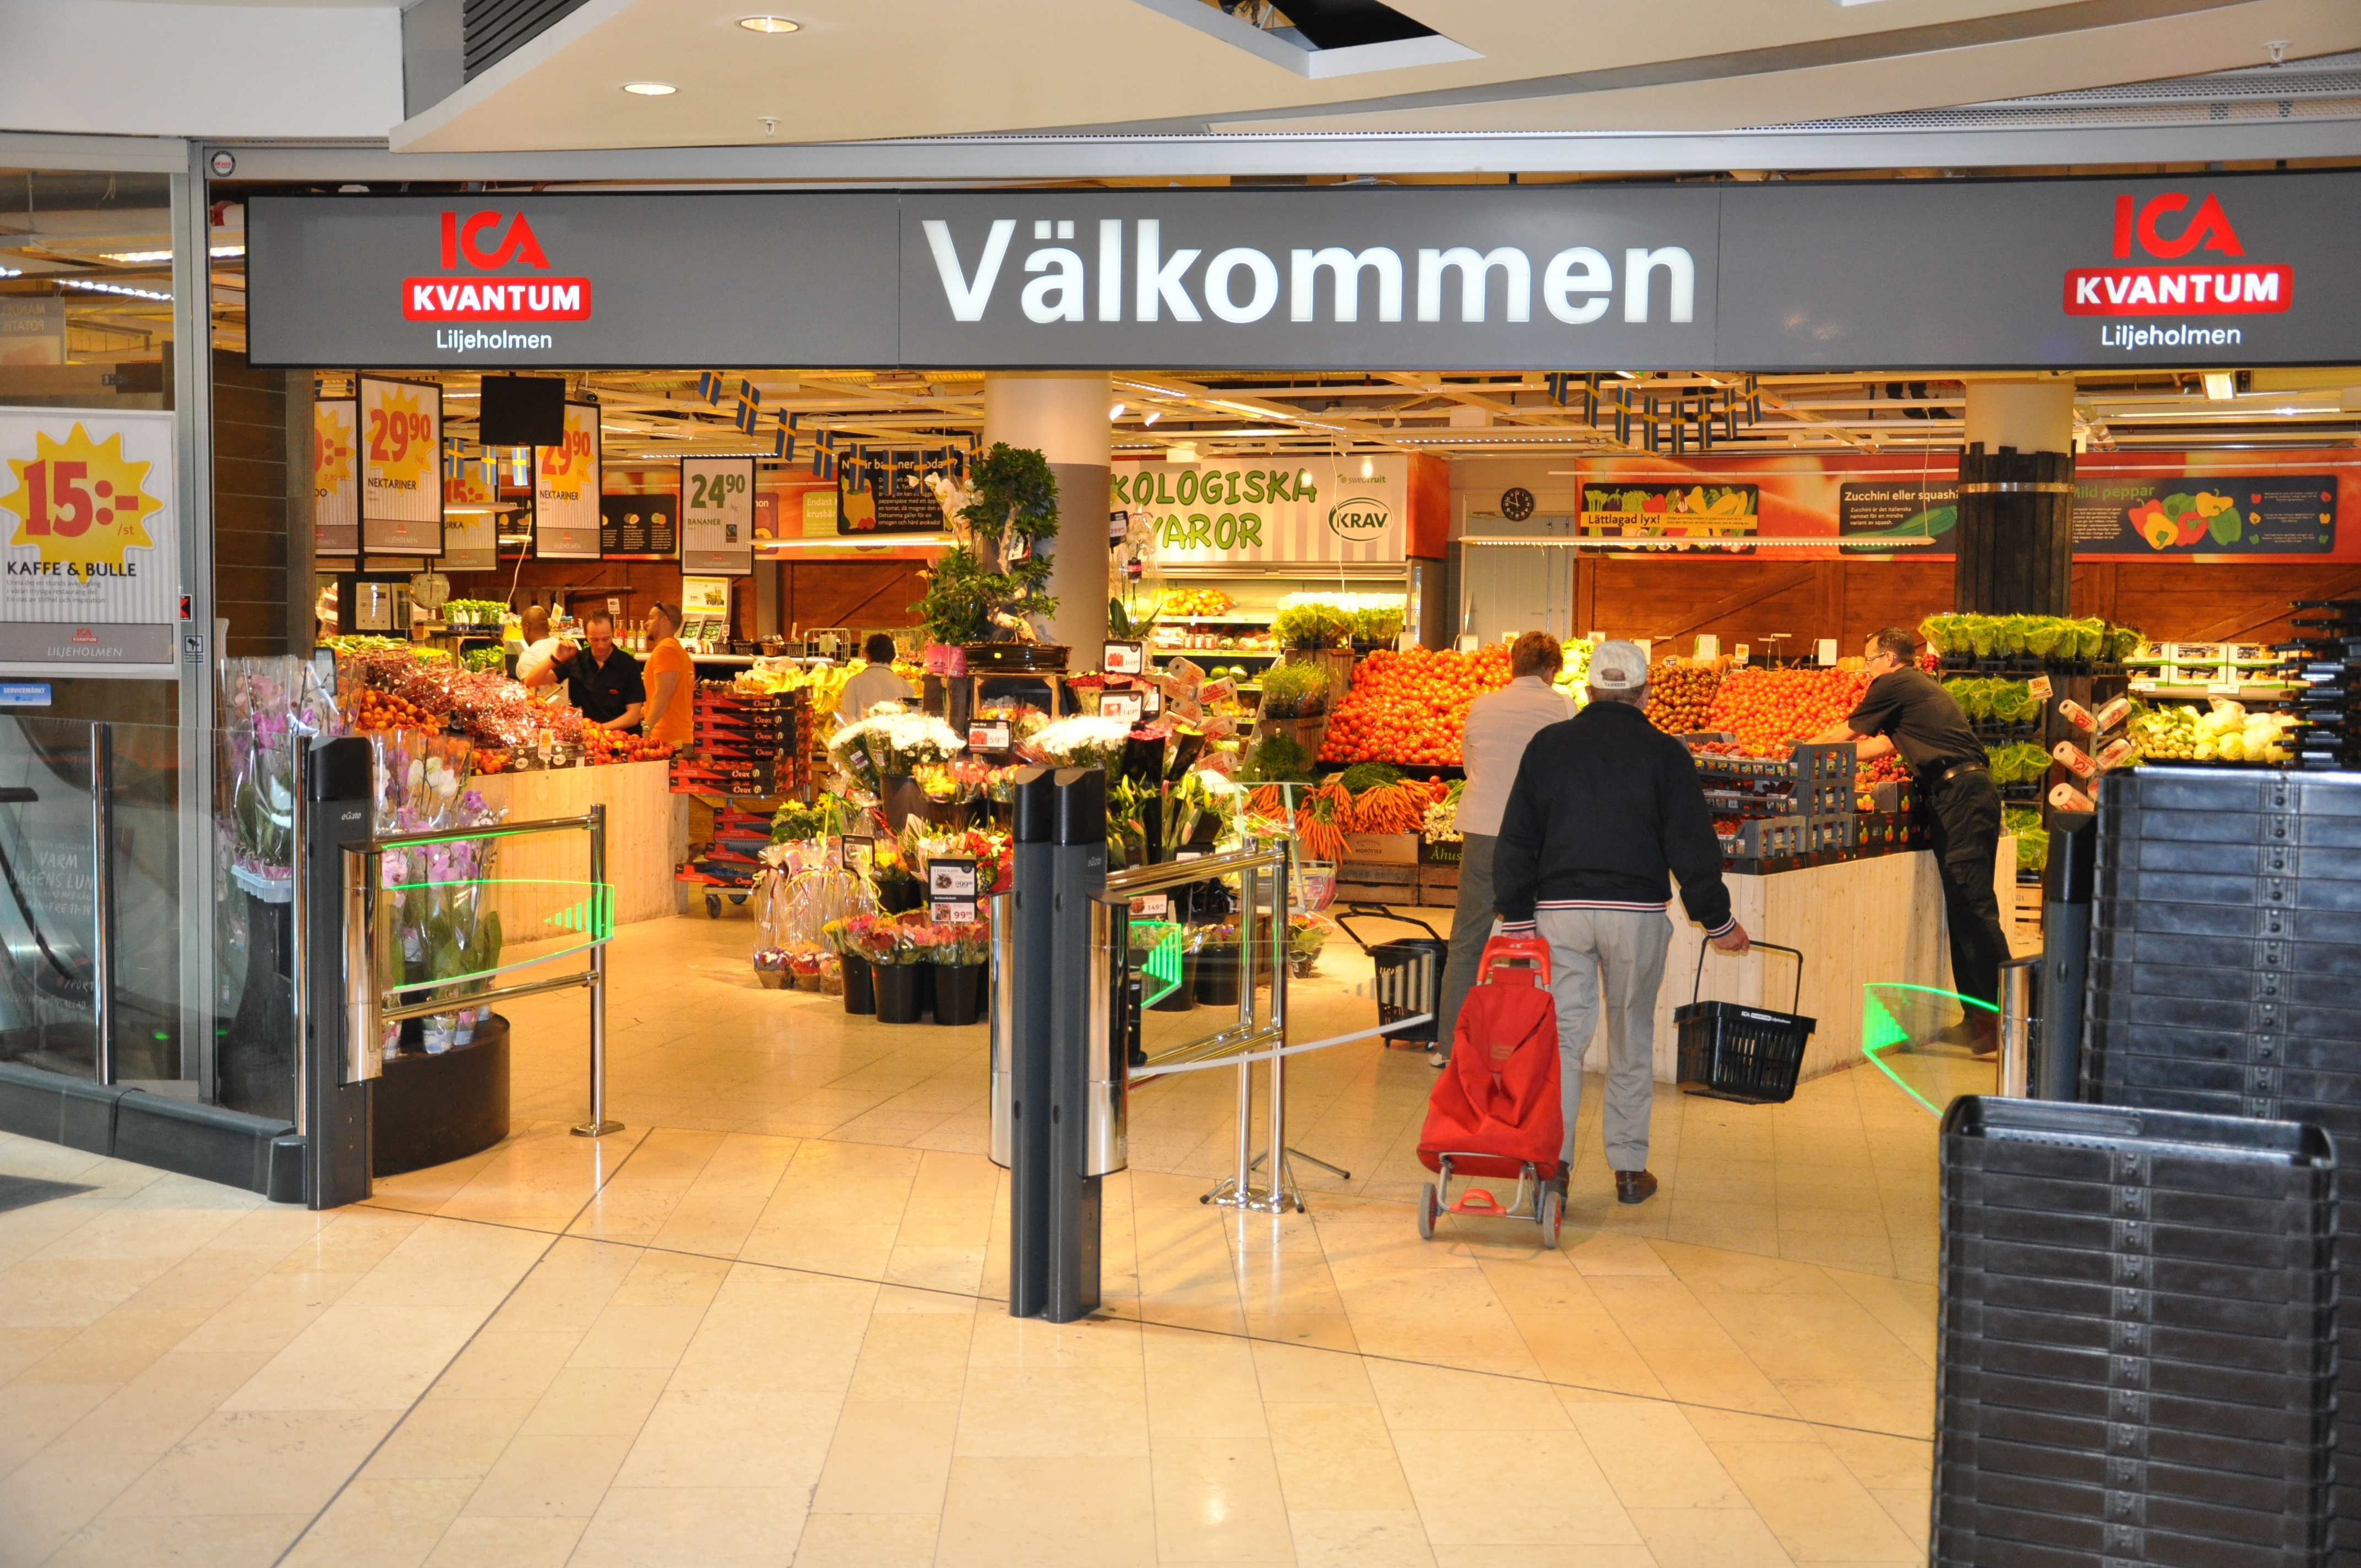 Ica Kvantum Mall Of Scandinavia Jobb